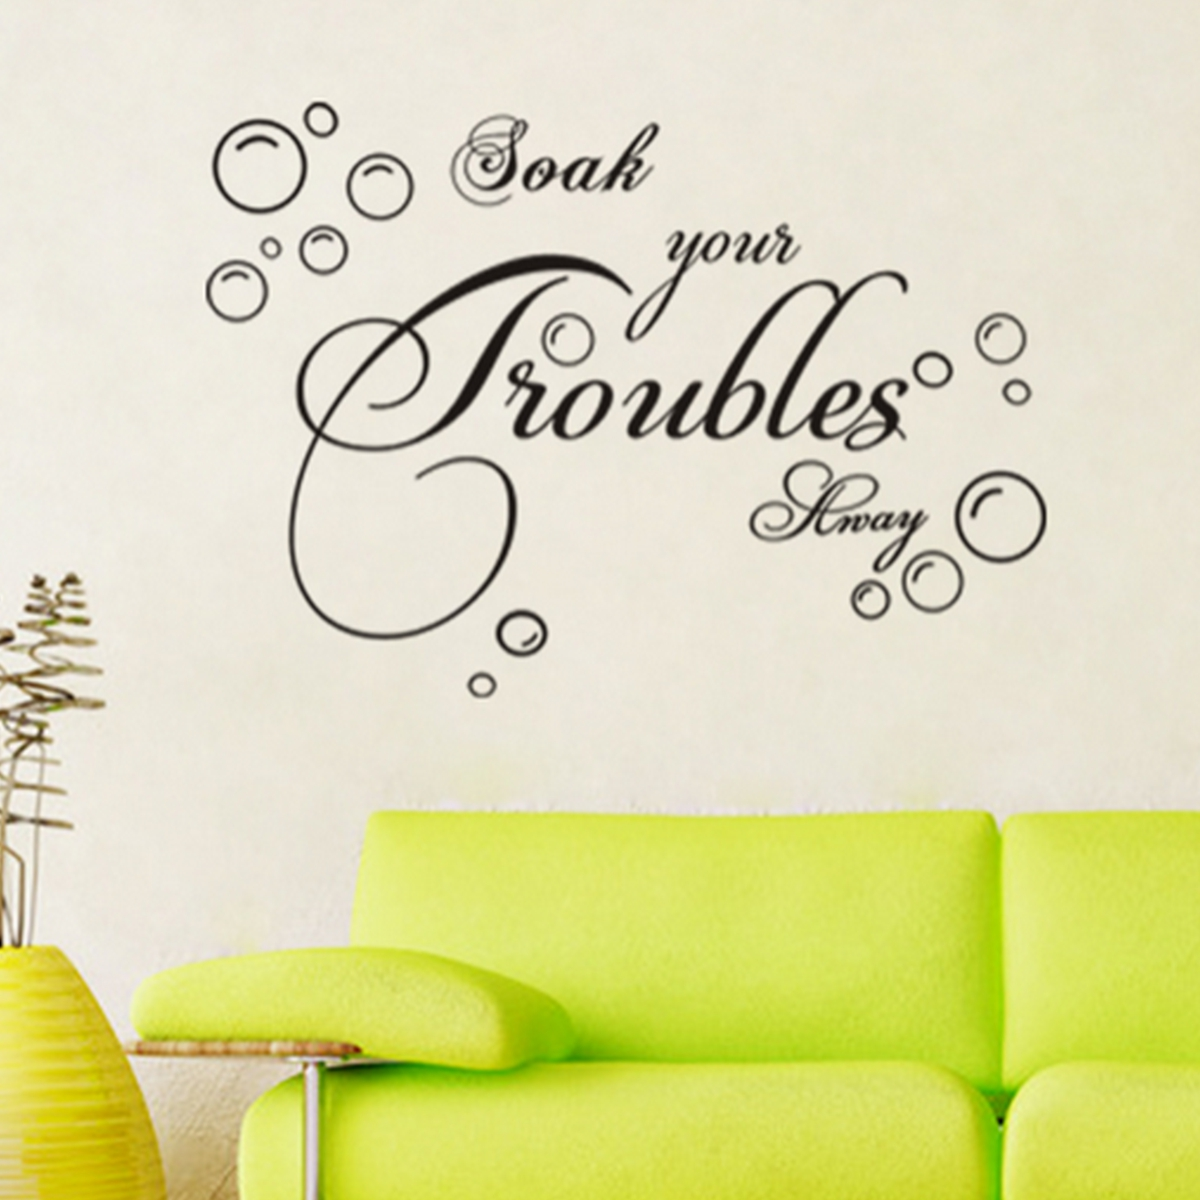 soak your trouble away art quote wall decal decor vinyl